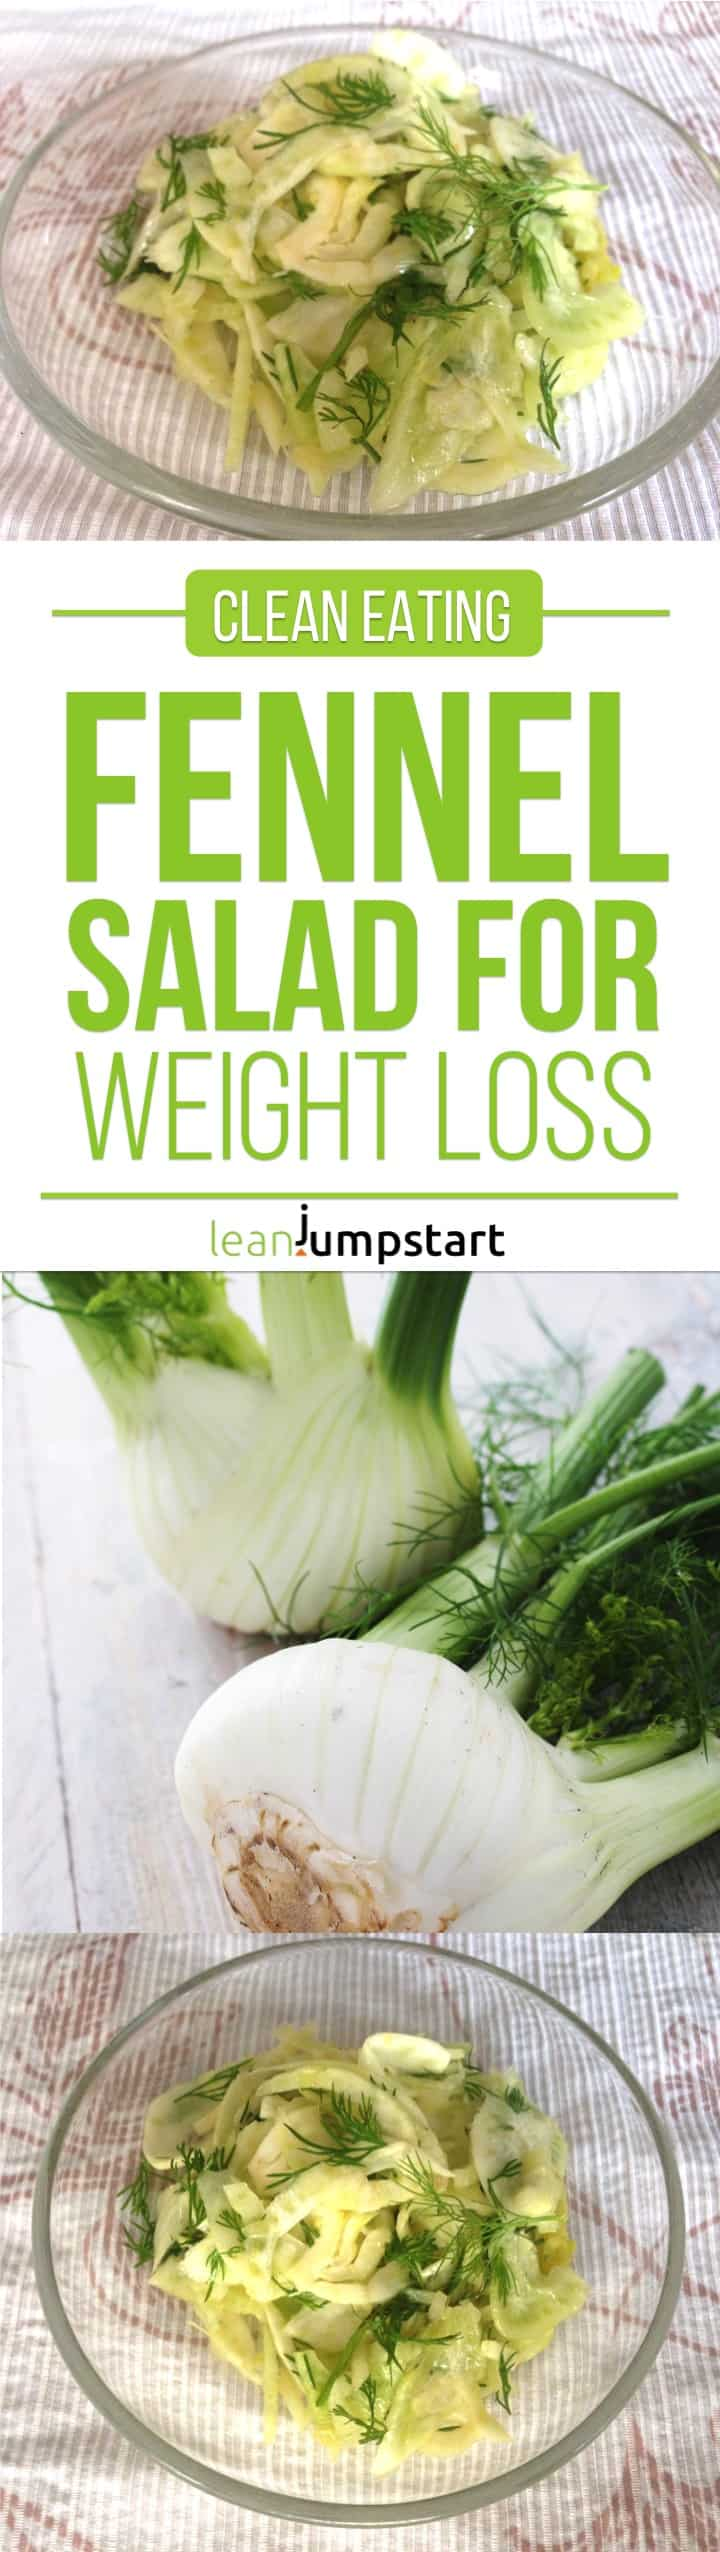 fennel salad: a clean eating salad for weight loss